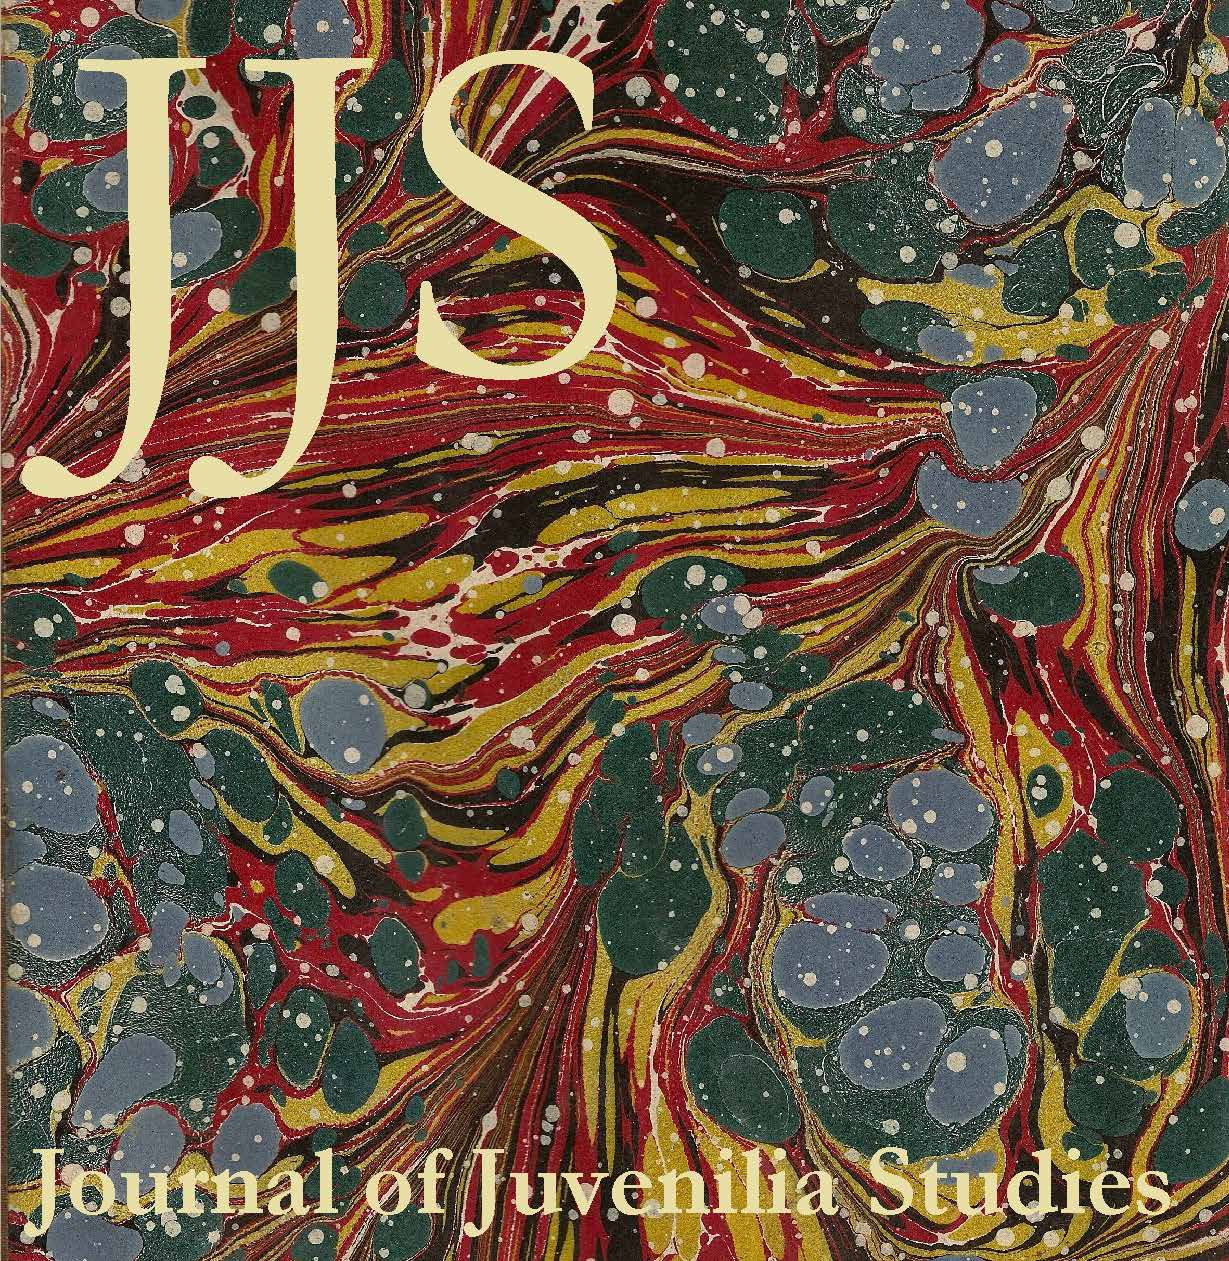 JJS Homepage Image and Volume 4 (2021) Cover